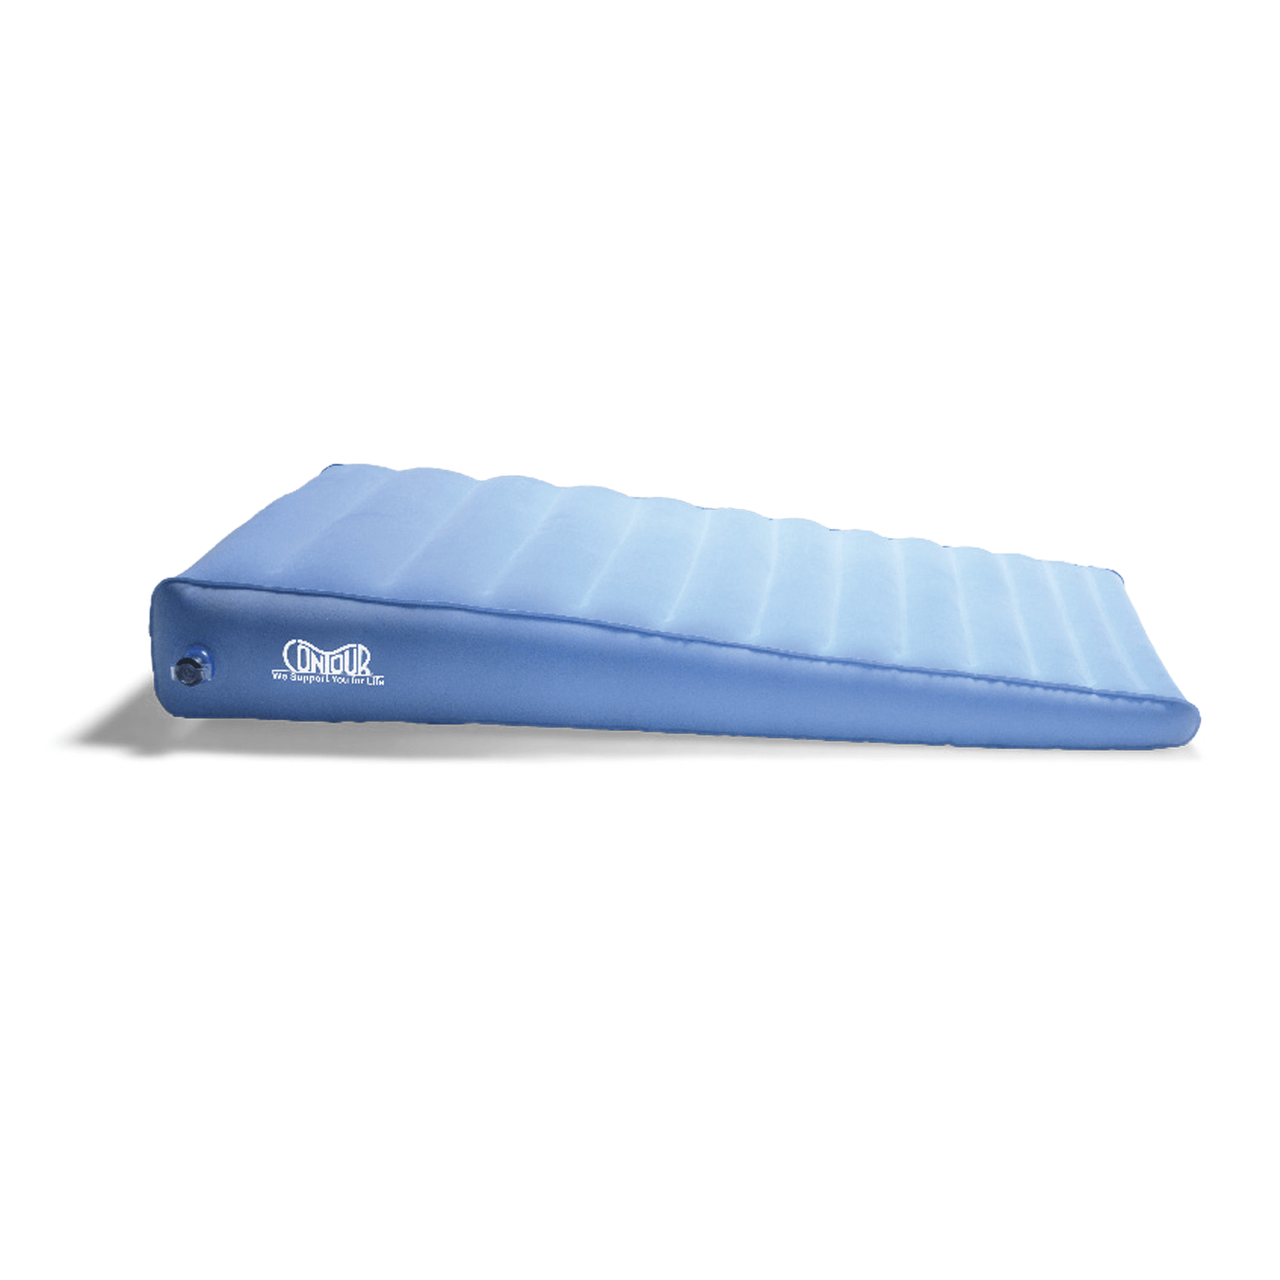 acid reflux bed wedge inflatable - Bed Wedge For Acid Reflux